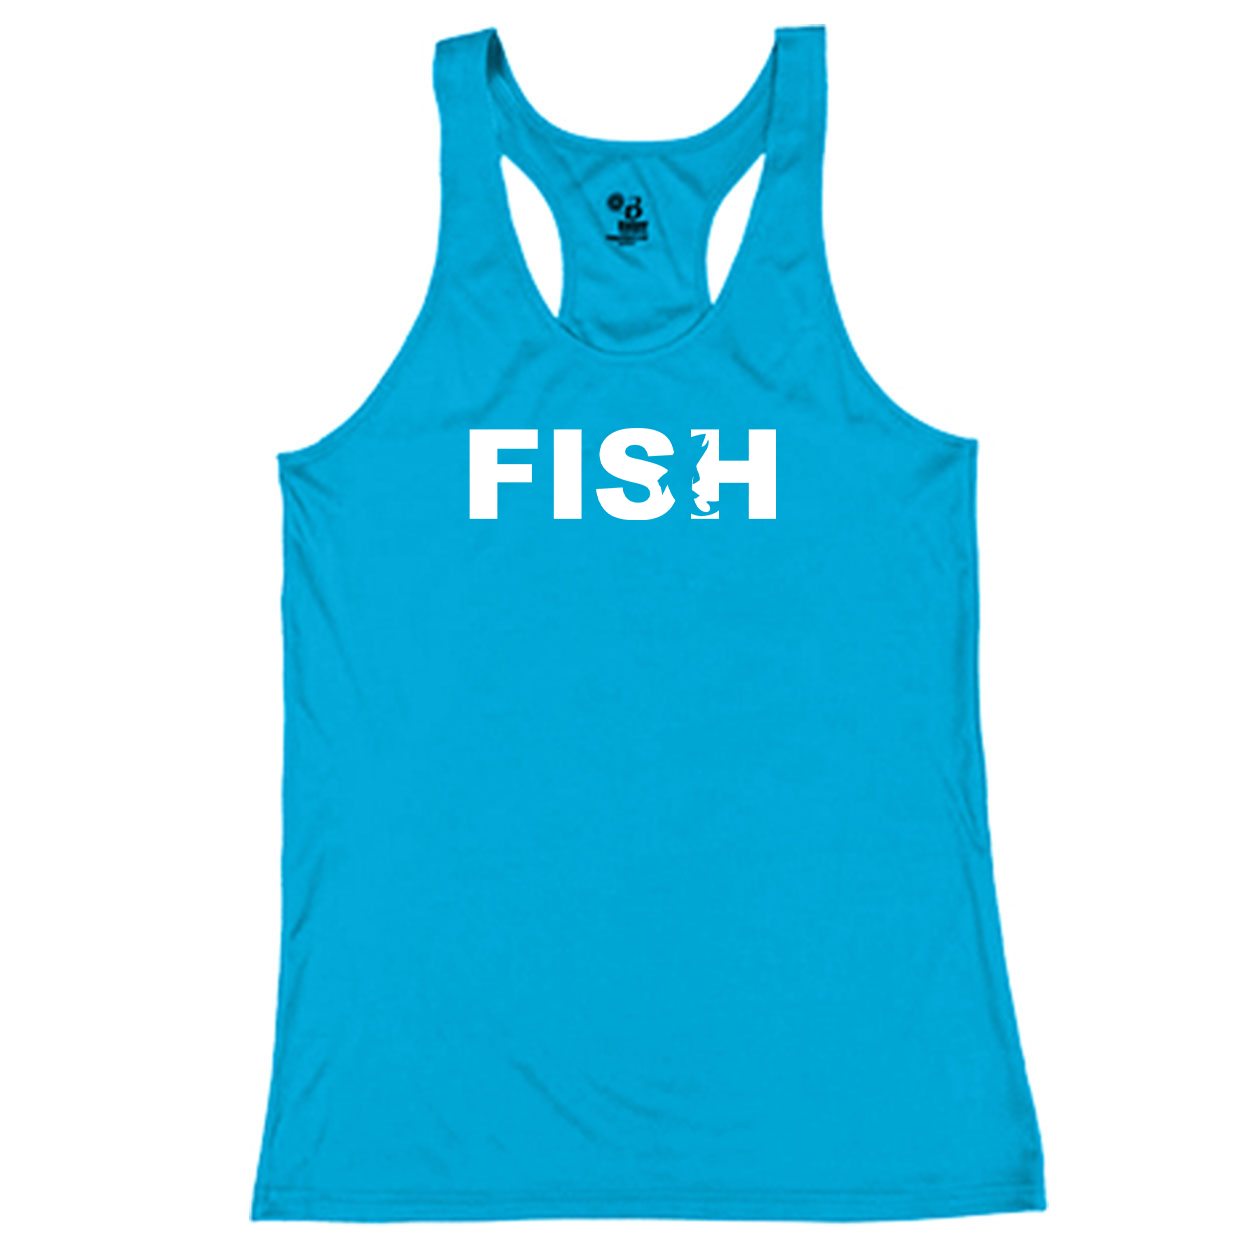 Fish Catch Logo Classic Youth Girls Performance Racerback Tank Top Electric Blue (White Logo)